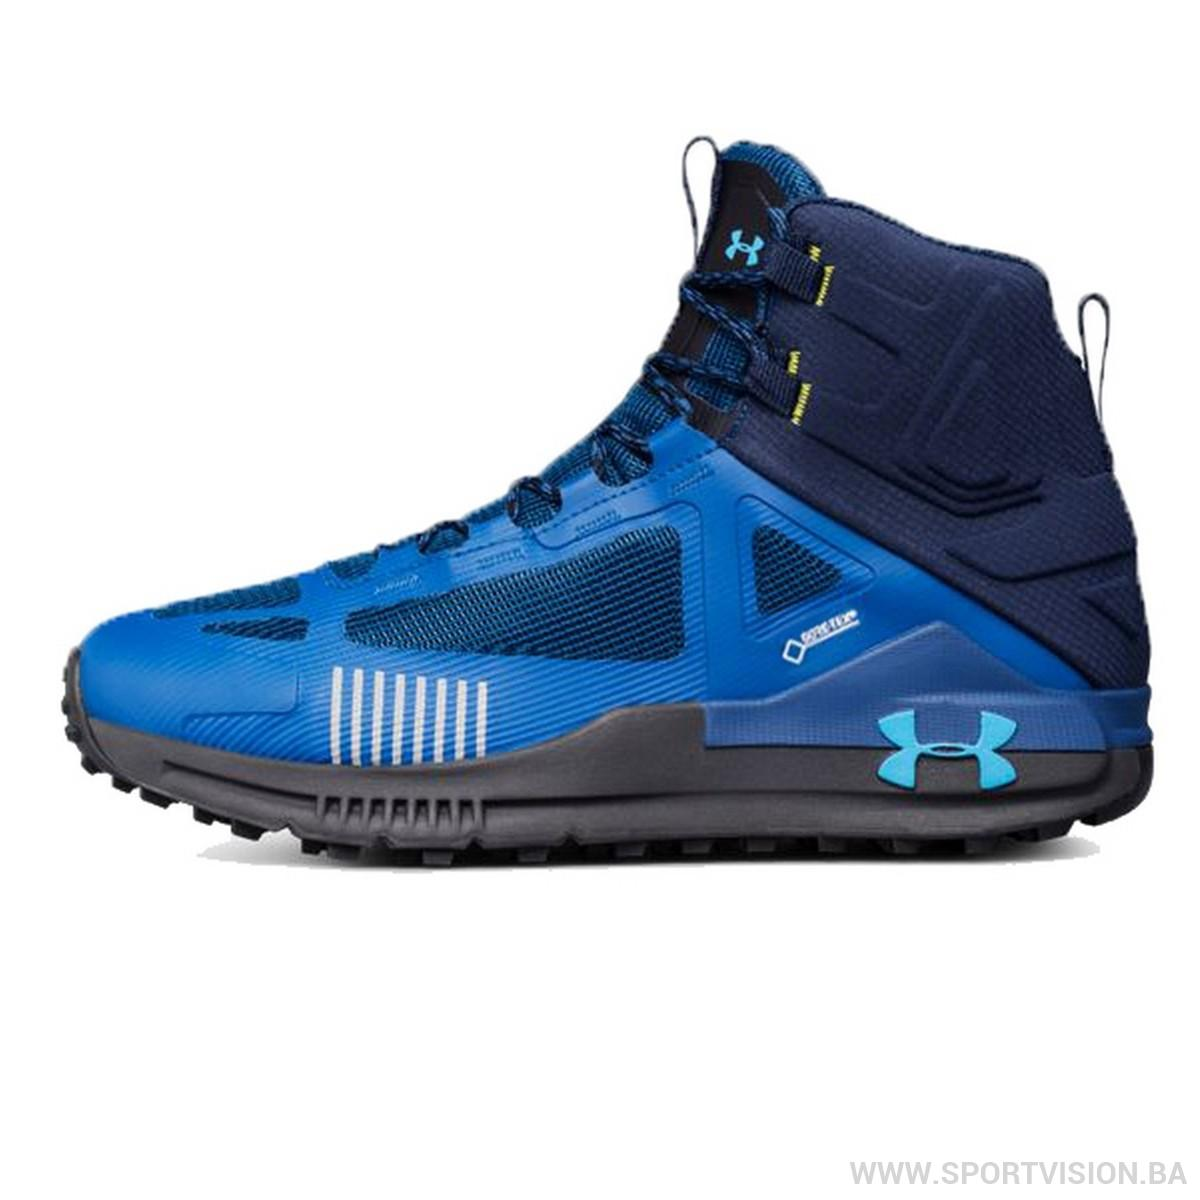 UNDER ARMOUR Cipele BOOTS-UA VERGE 2.0 MID GTX